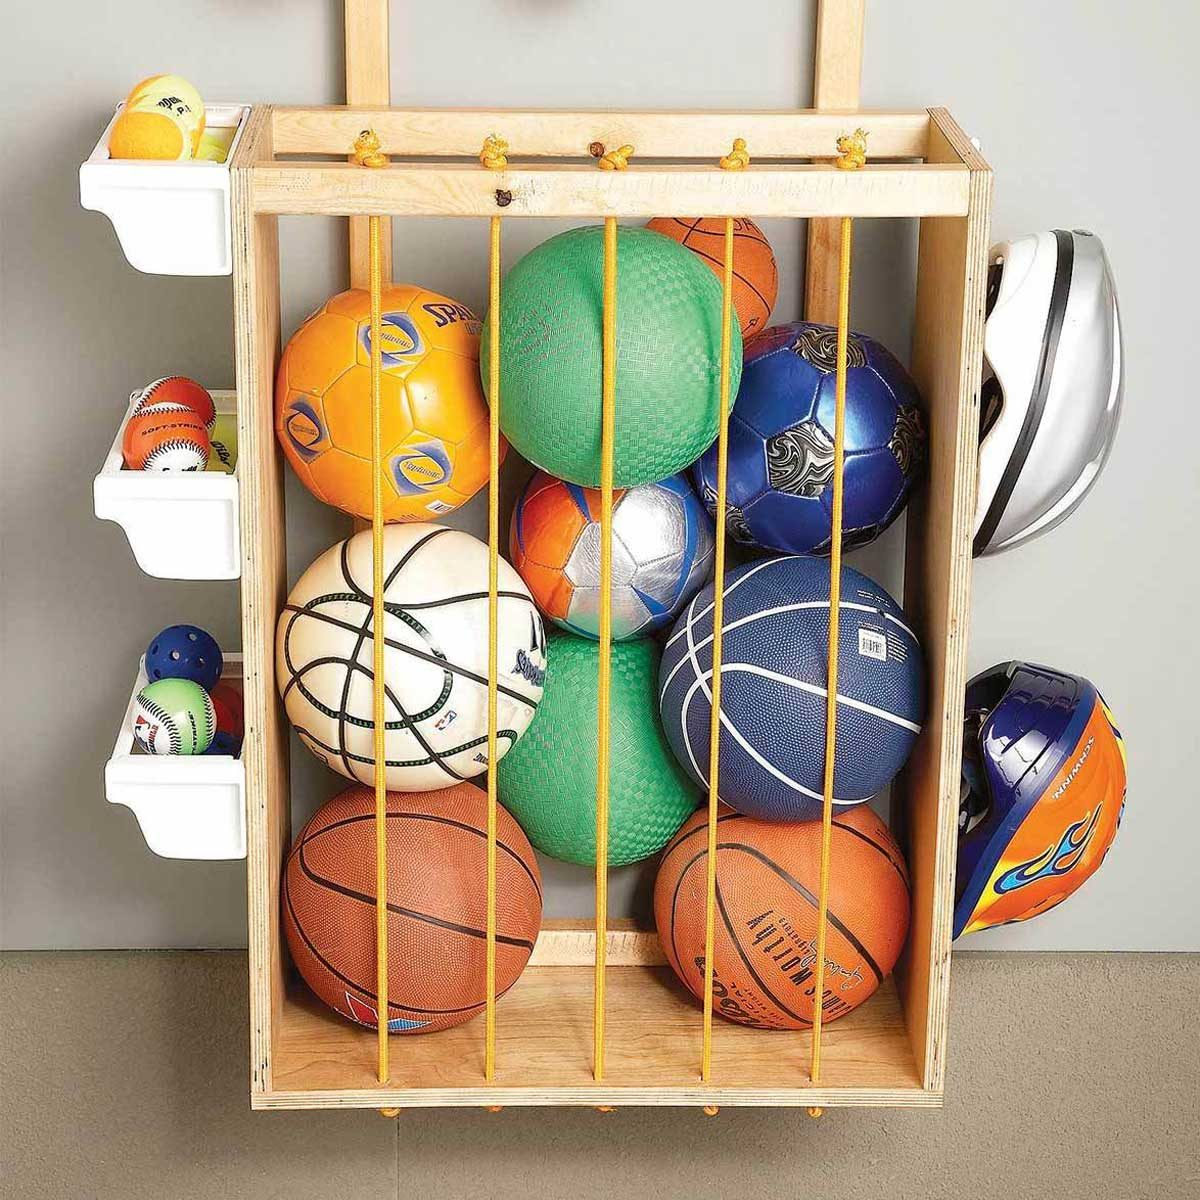 fh09sep_501_51_126 ball sports equipment storage